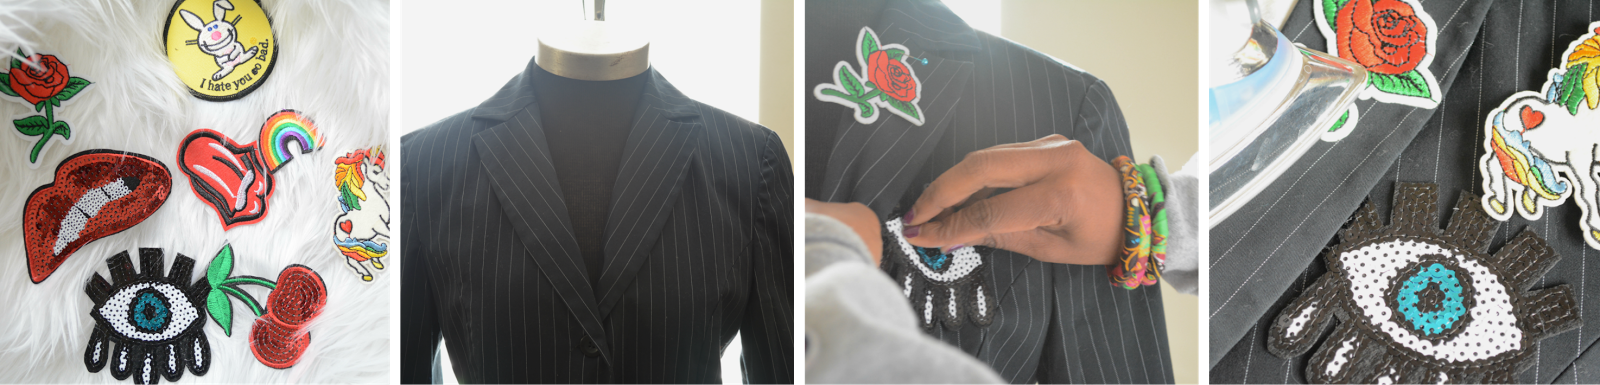 makeover a jacket with patches